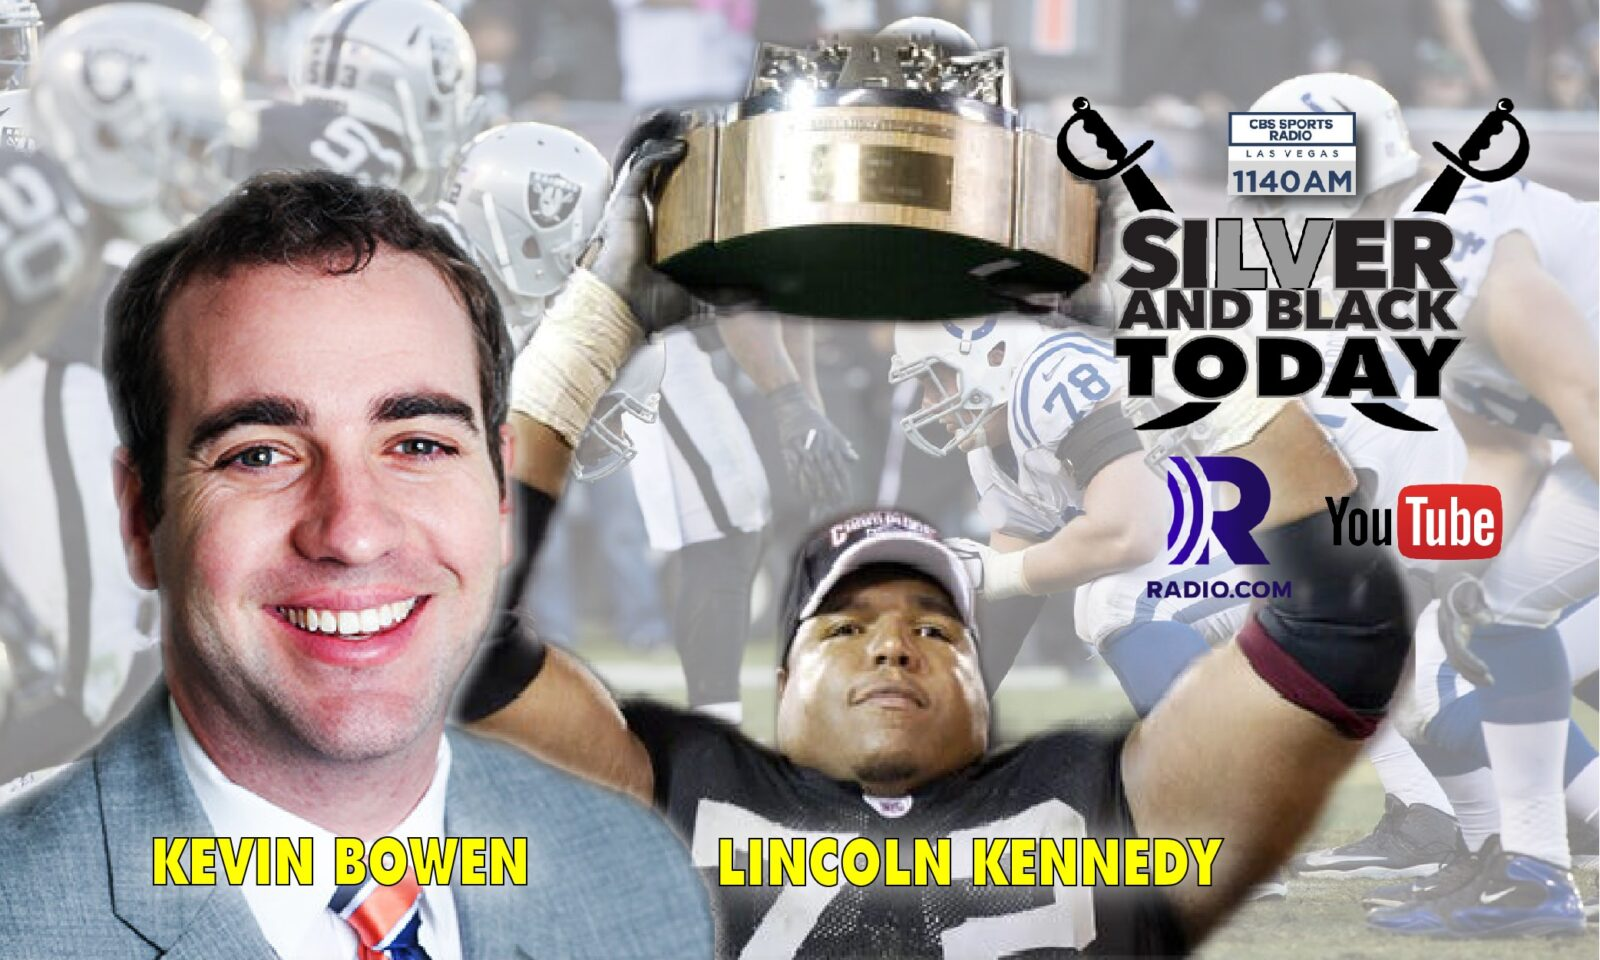 silver and black today lincoln kennedy Kevin Bowen Colts